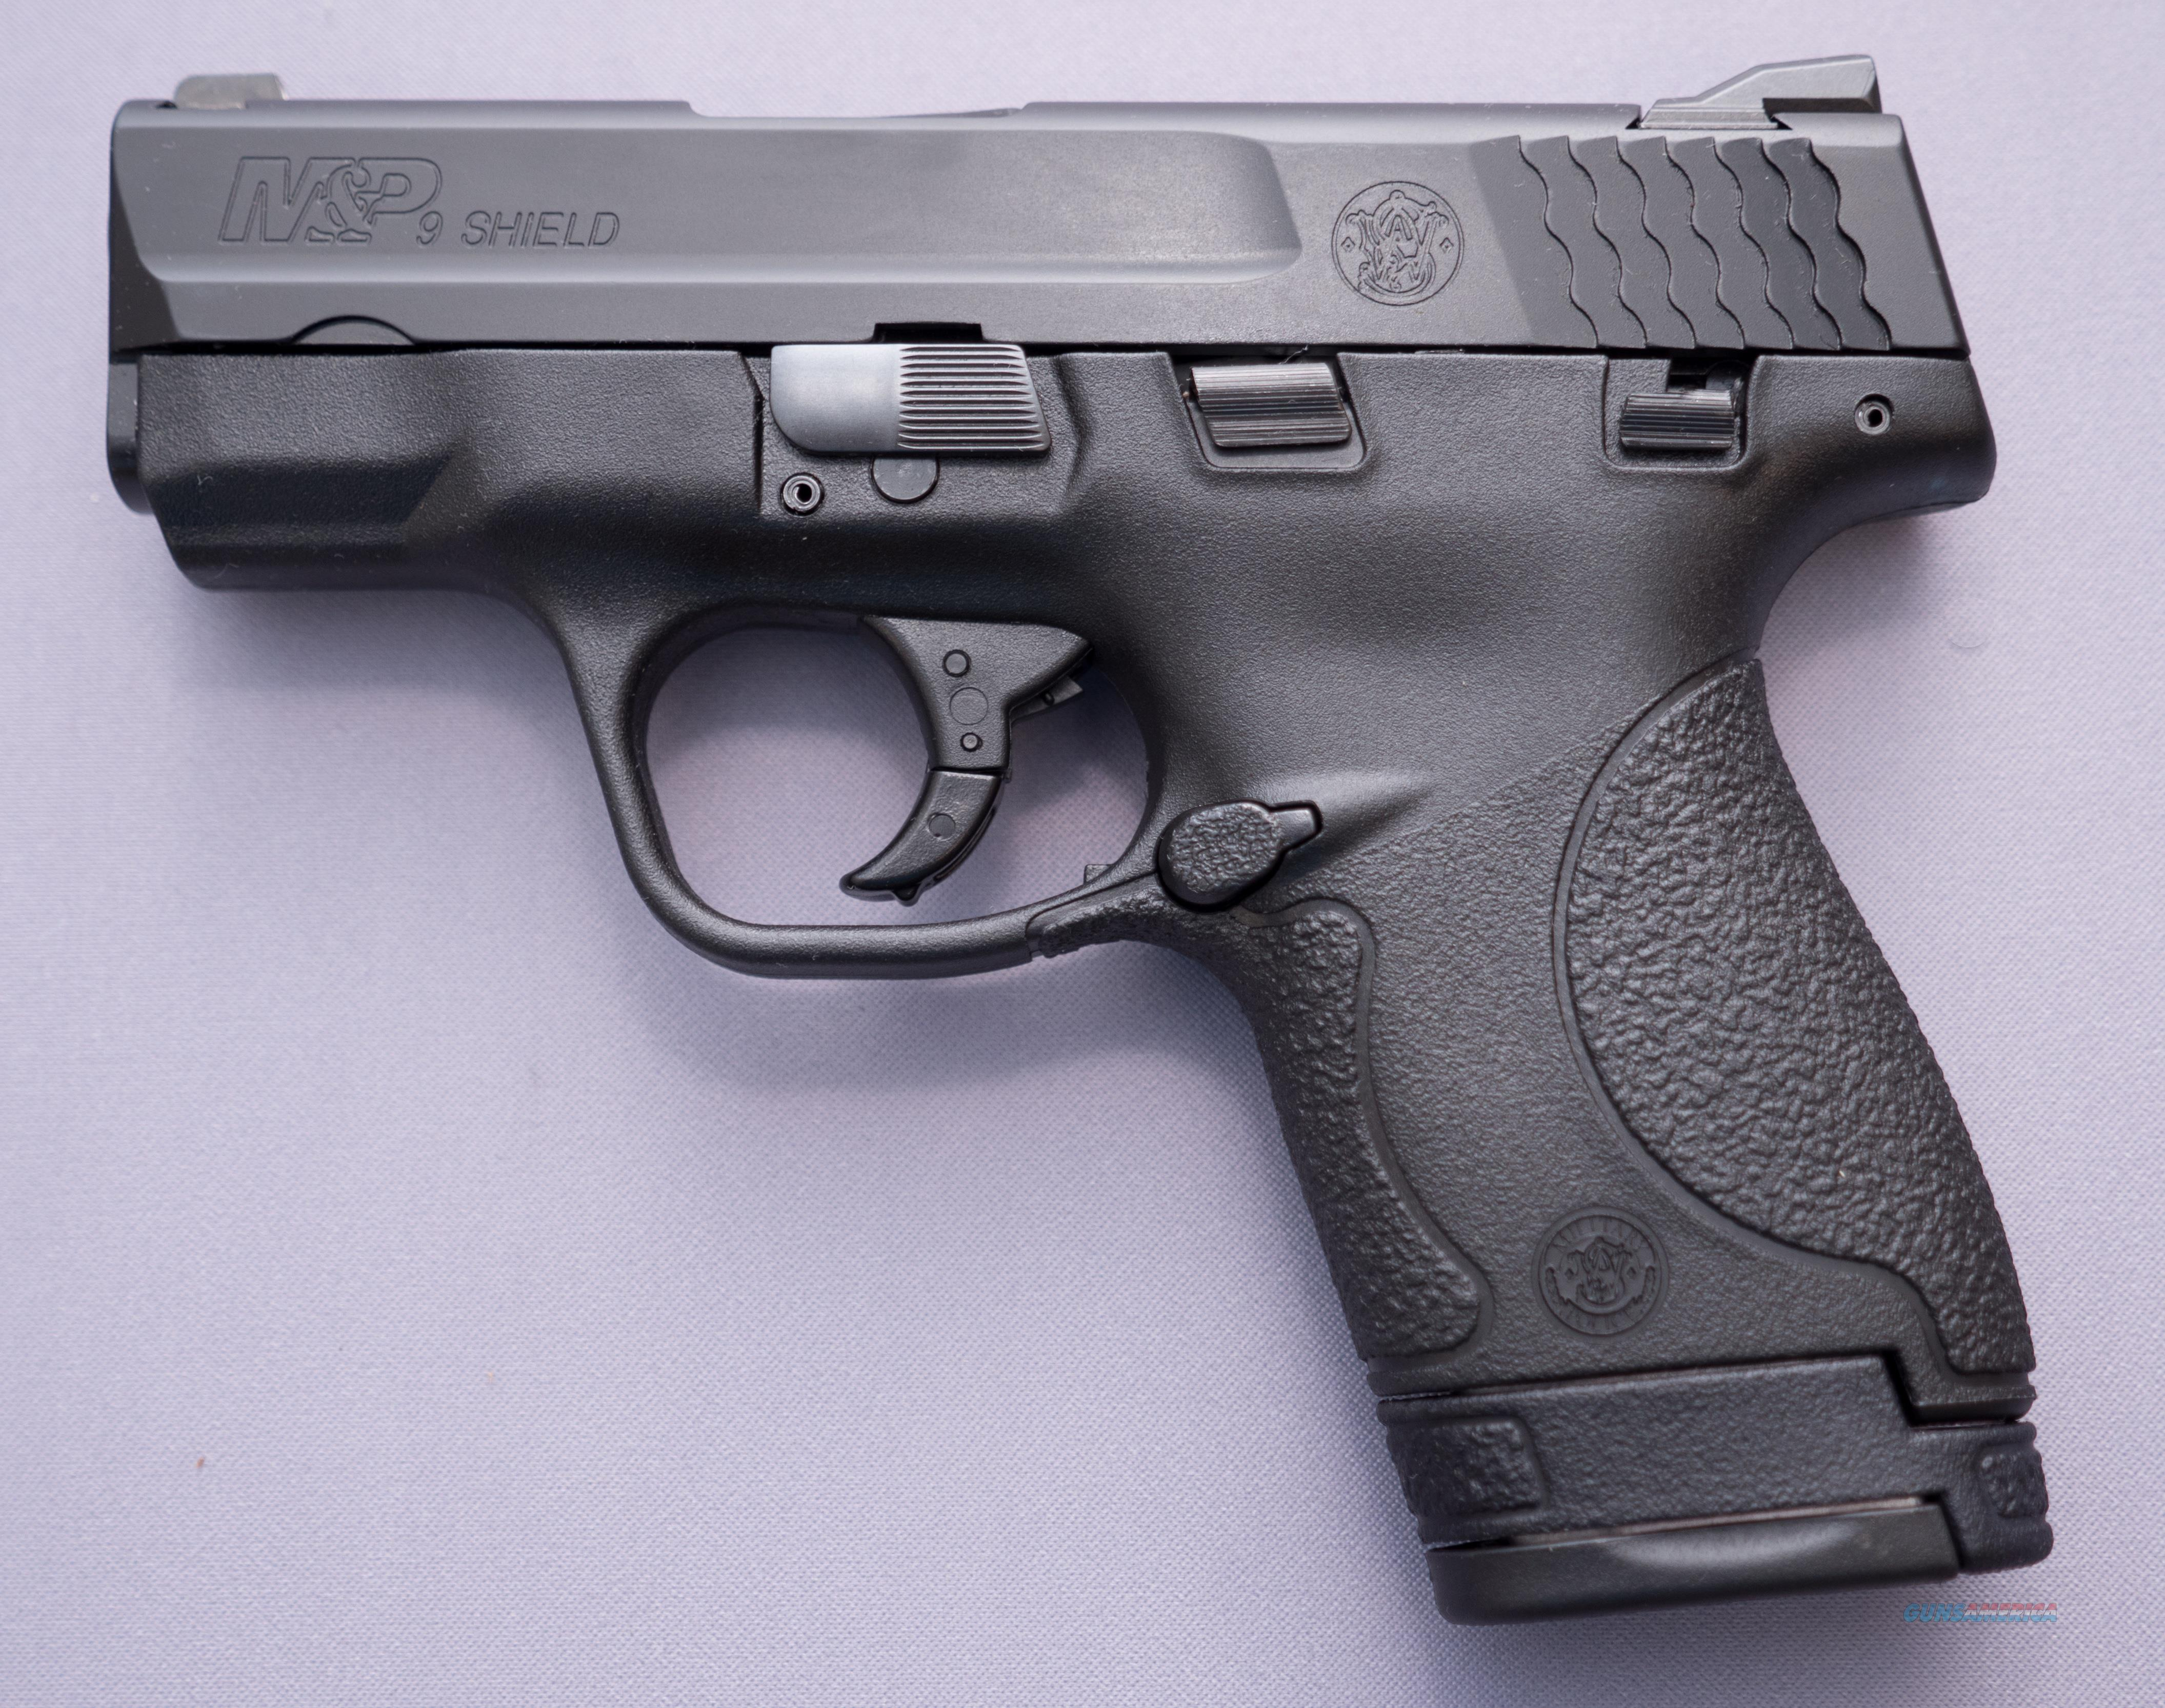 M&P 9 Shield Thumb Safety, 9mm 8+1  Free Shipping NO Credit Card Fees  Guns > Pistols > Smith & Wesson Pistols - Autos > Shield